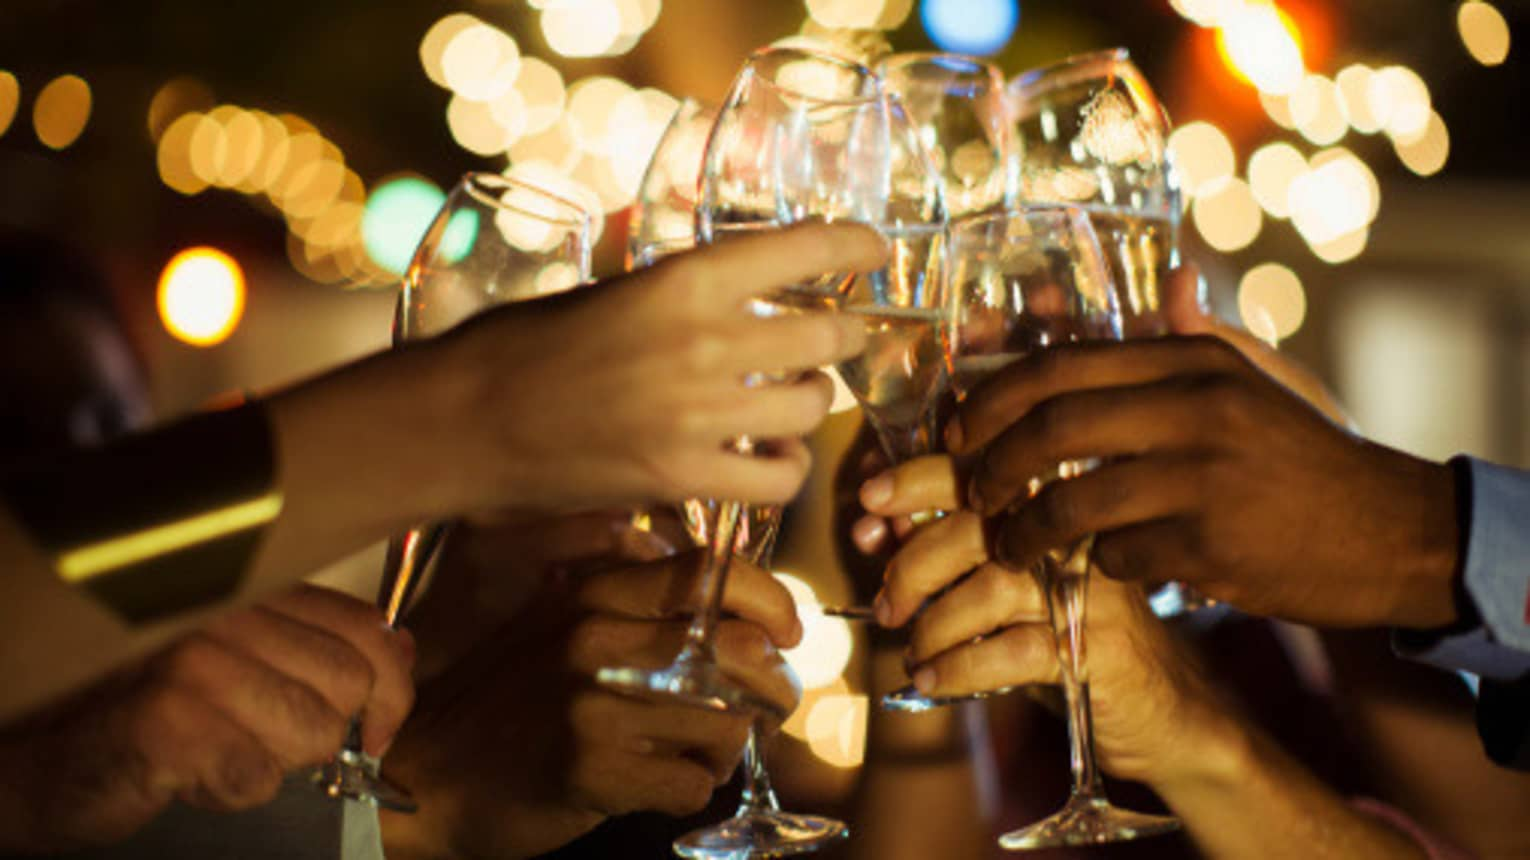 A group of guests clink their glasses of champagne together on a patio with twinkle lights